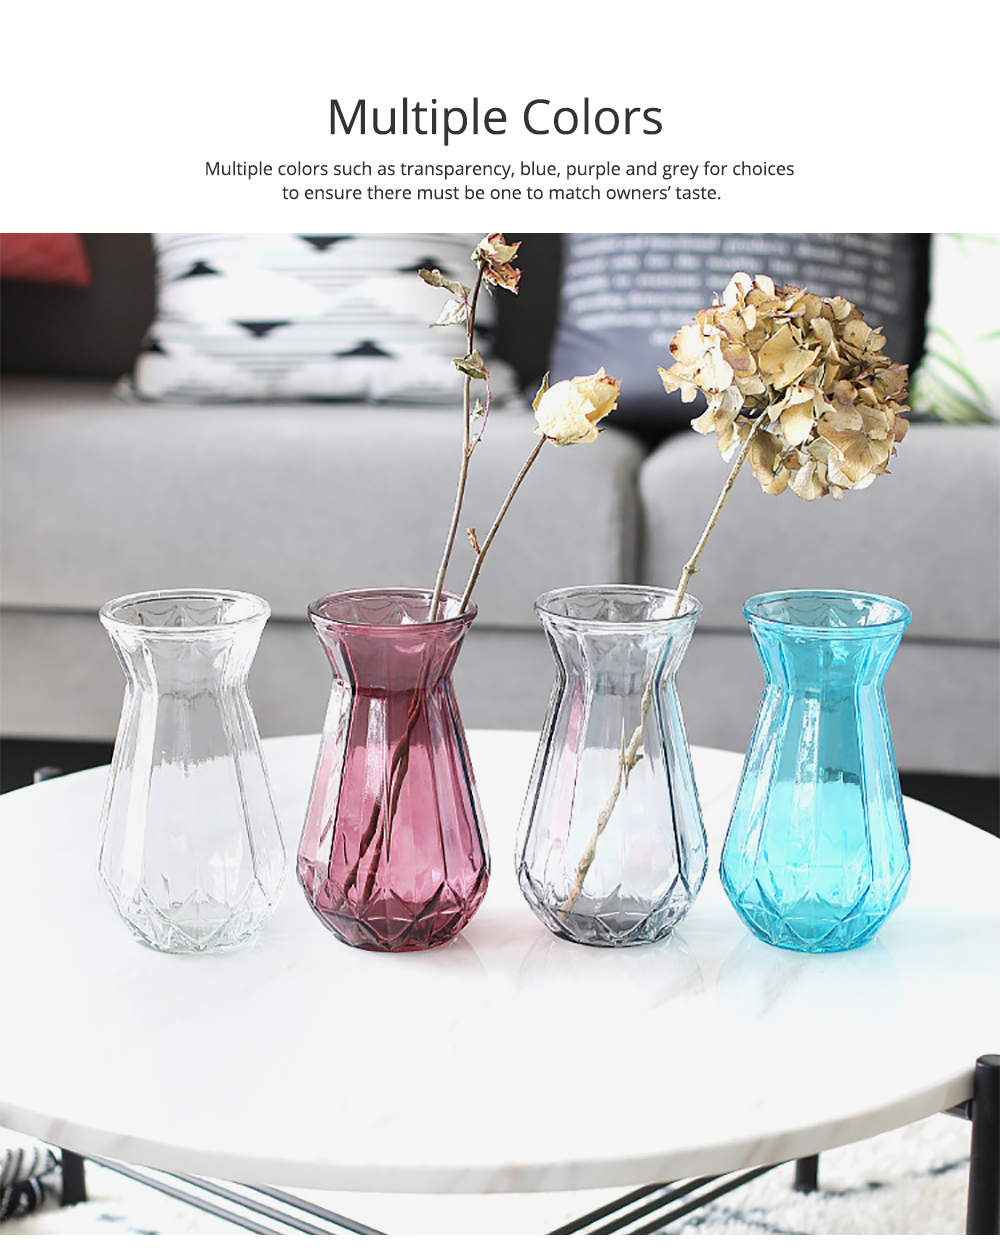 Geometric Vases for Centerpieces Rose Gold Glass Vases for Living Room Decoration Pumpkin Vases for Centerpiece European Style Bag Vase Household Decorative Accessories 1